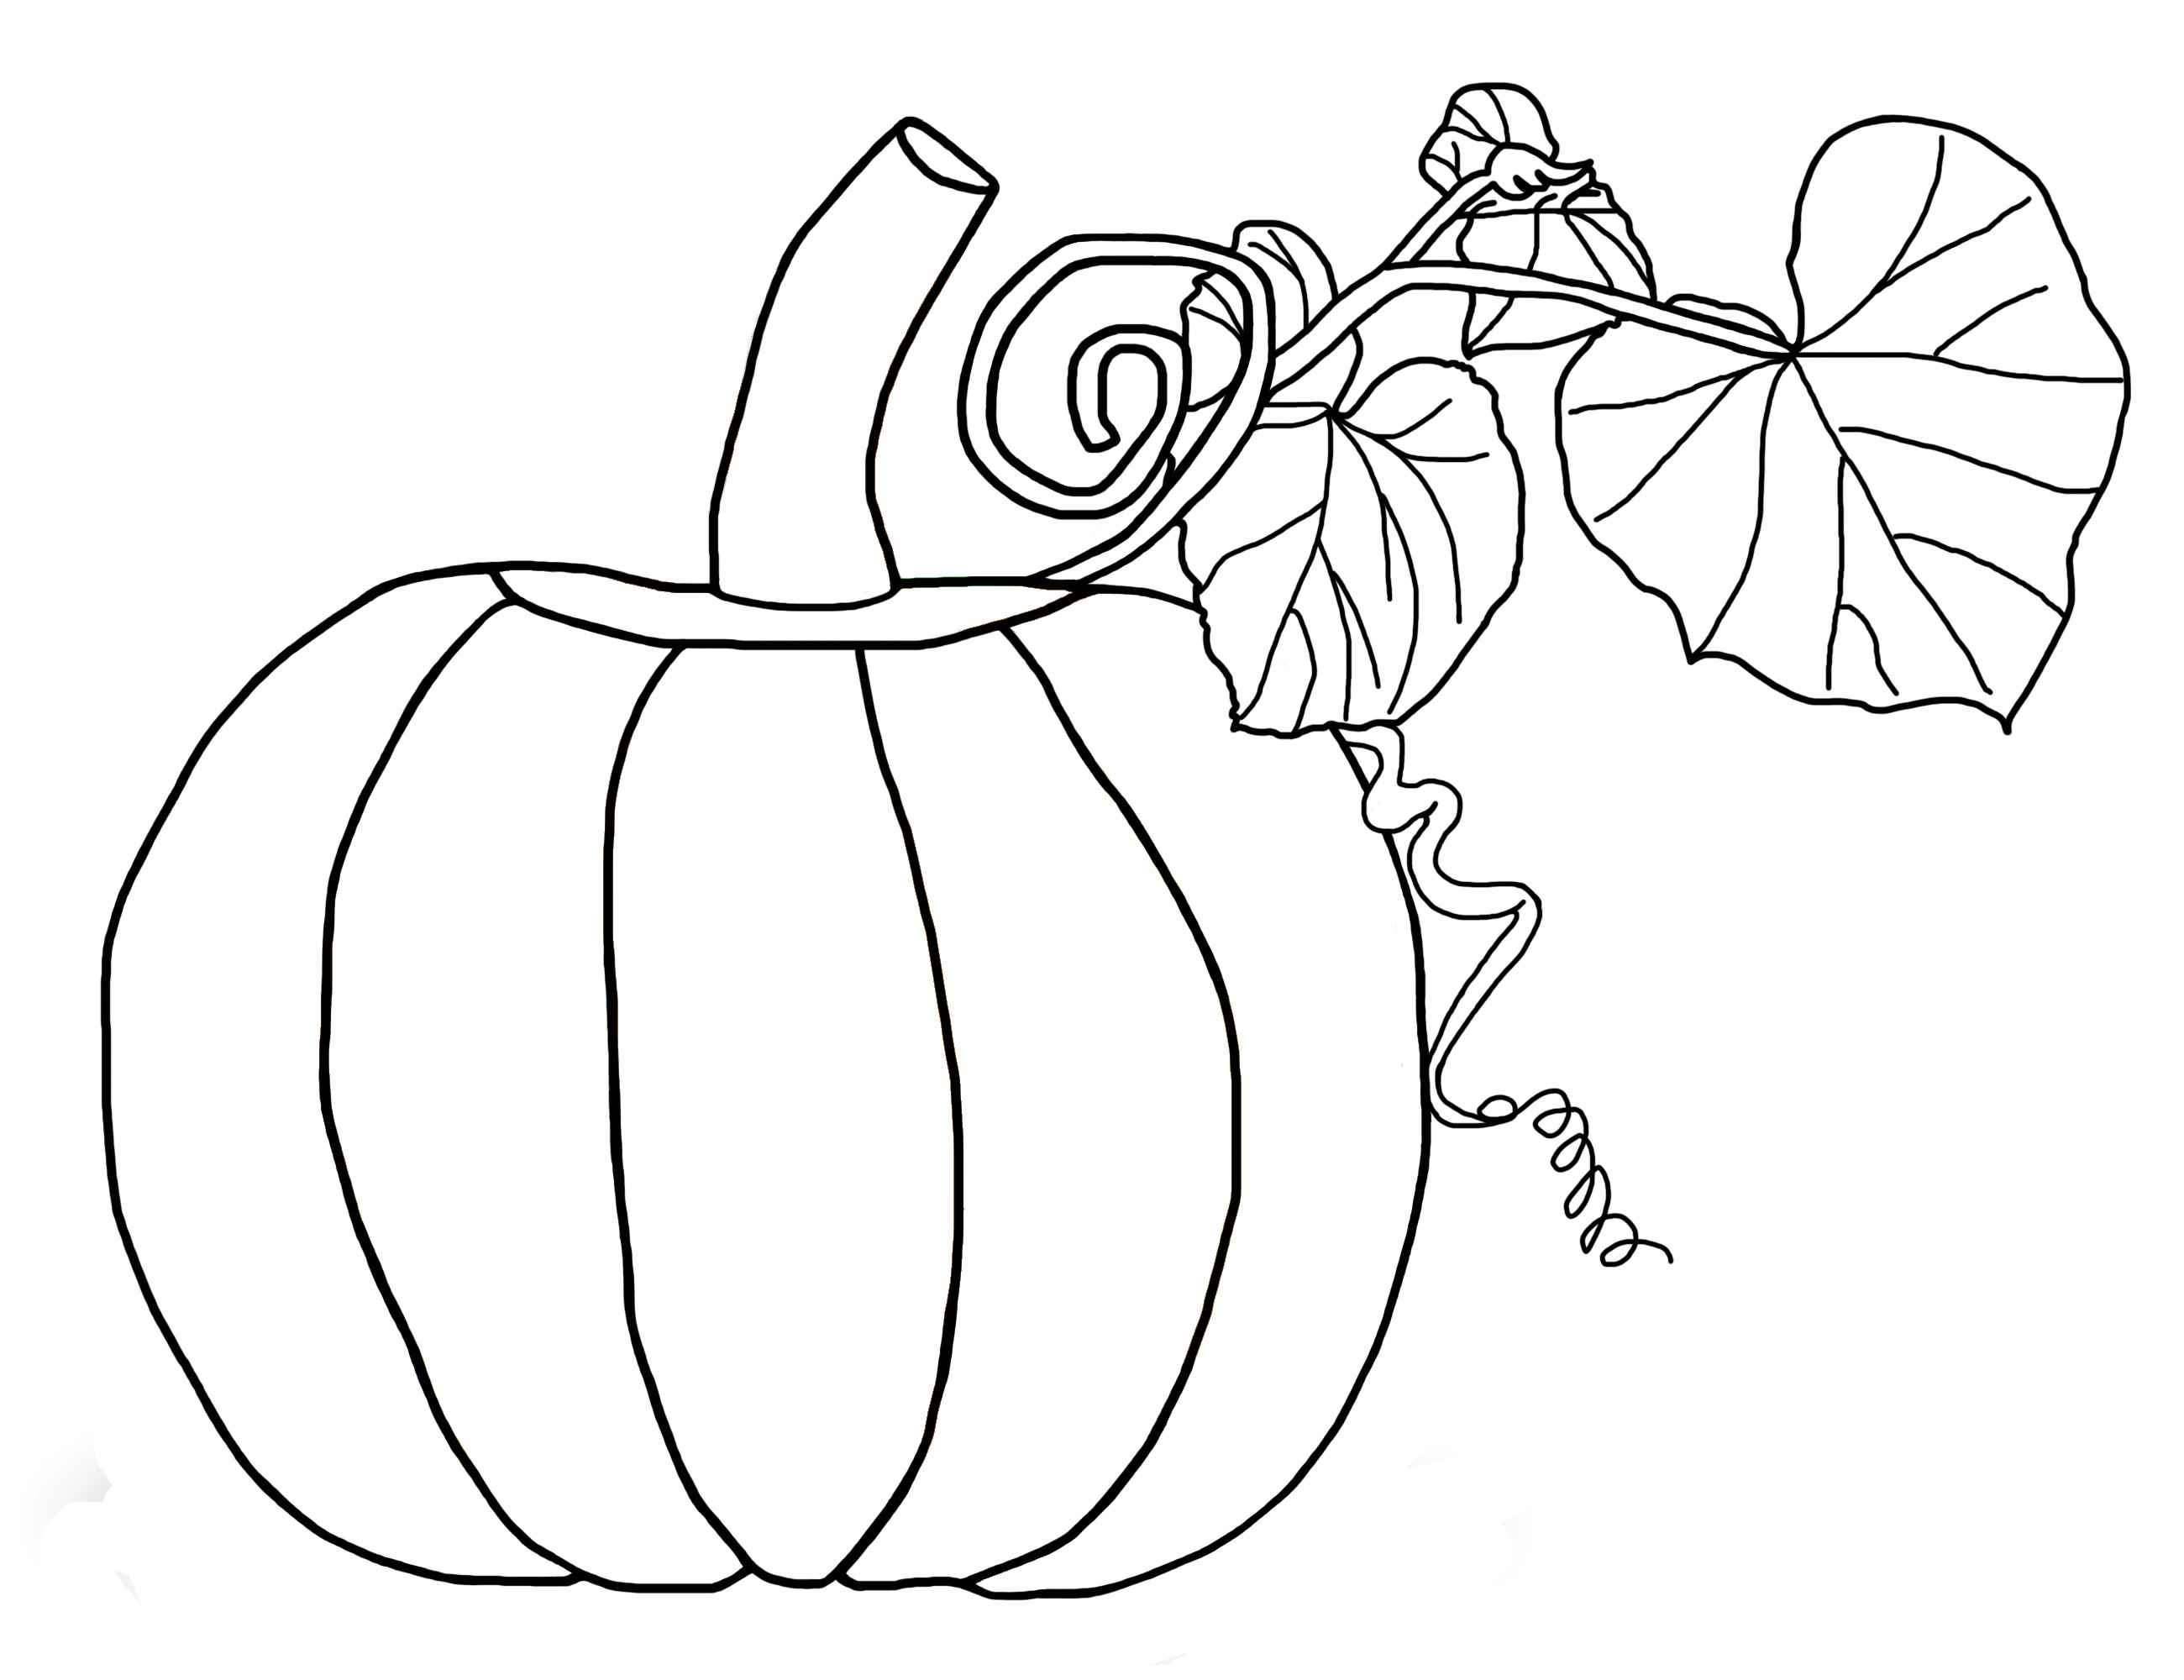 fall pumpkin coloring pages Free Pumpkin Coloring Pages for Kids fall pumpkin coloring pages